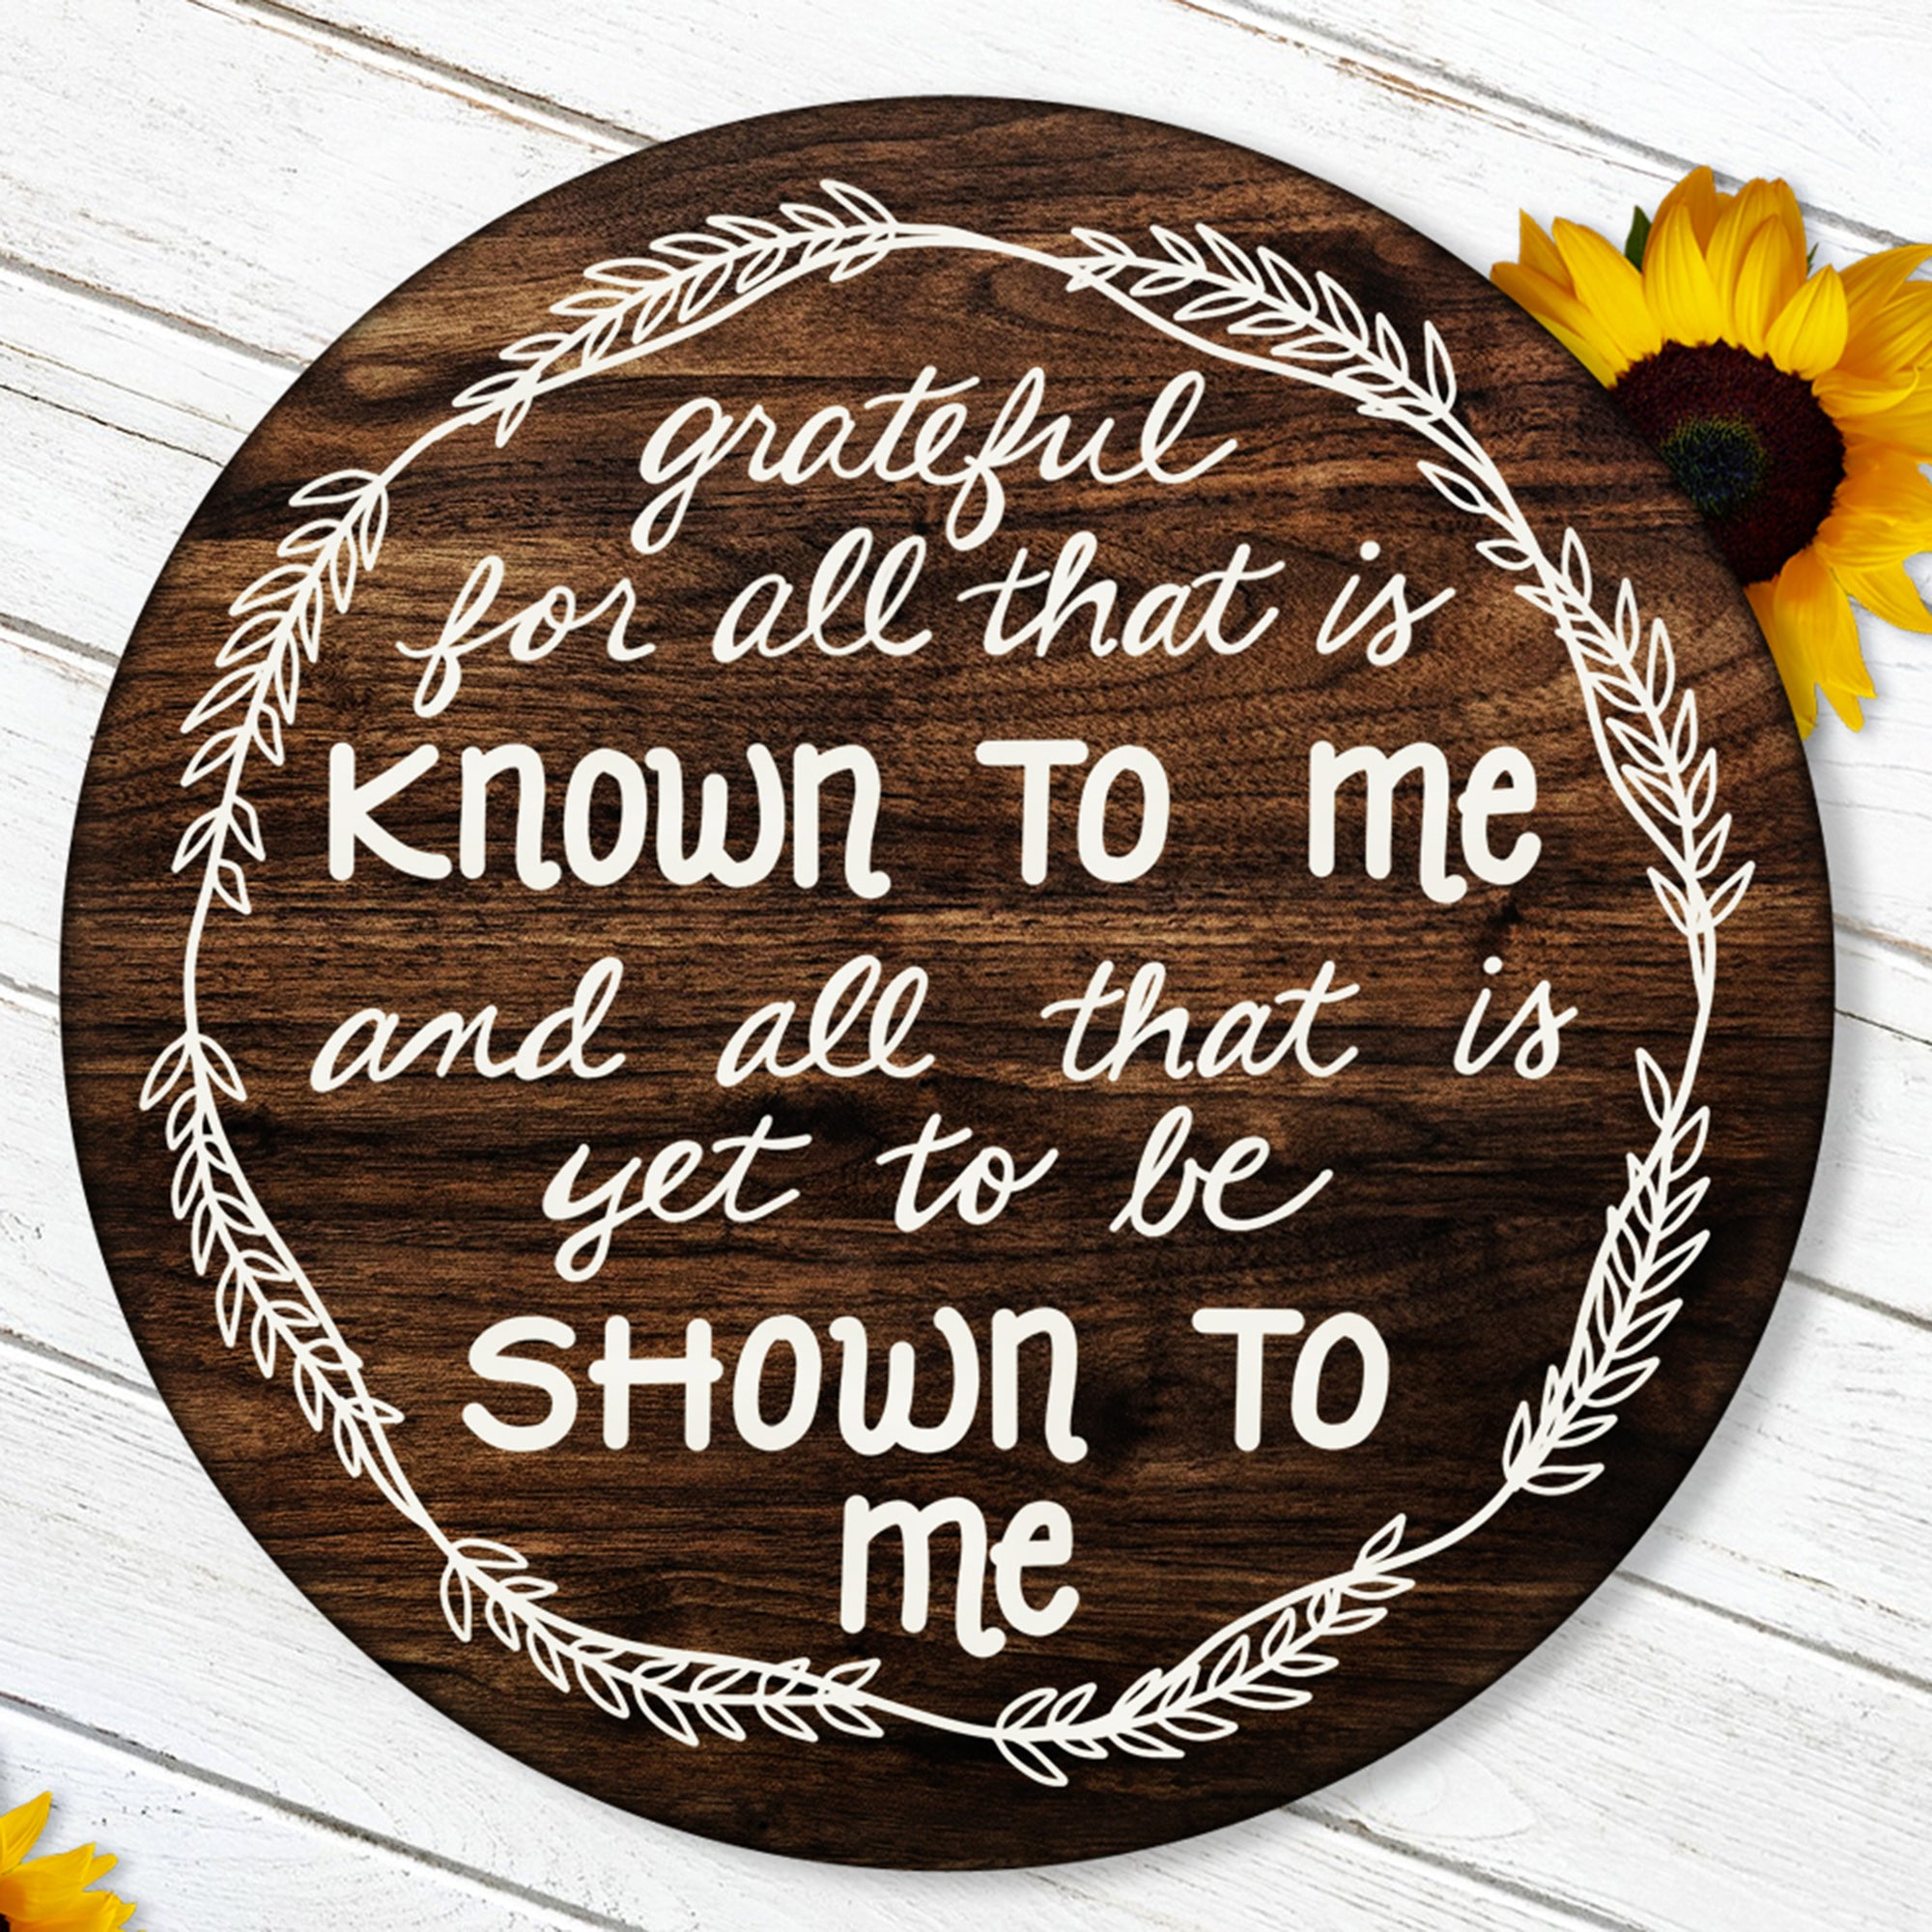 Round Thanksgiving SVG File, Grateful Quote SVG, Thankful Saying SVG, SVG File Saying for Round Sign, Rustic Sign SVG Cut File